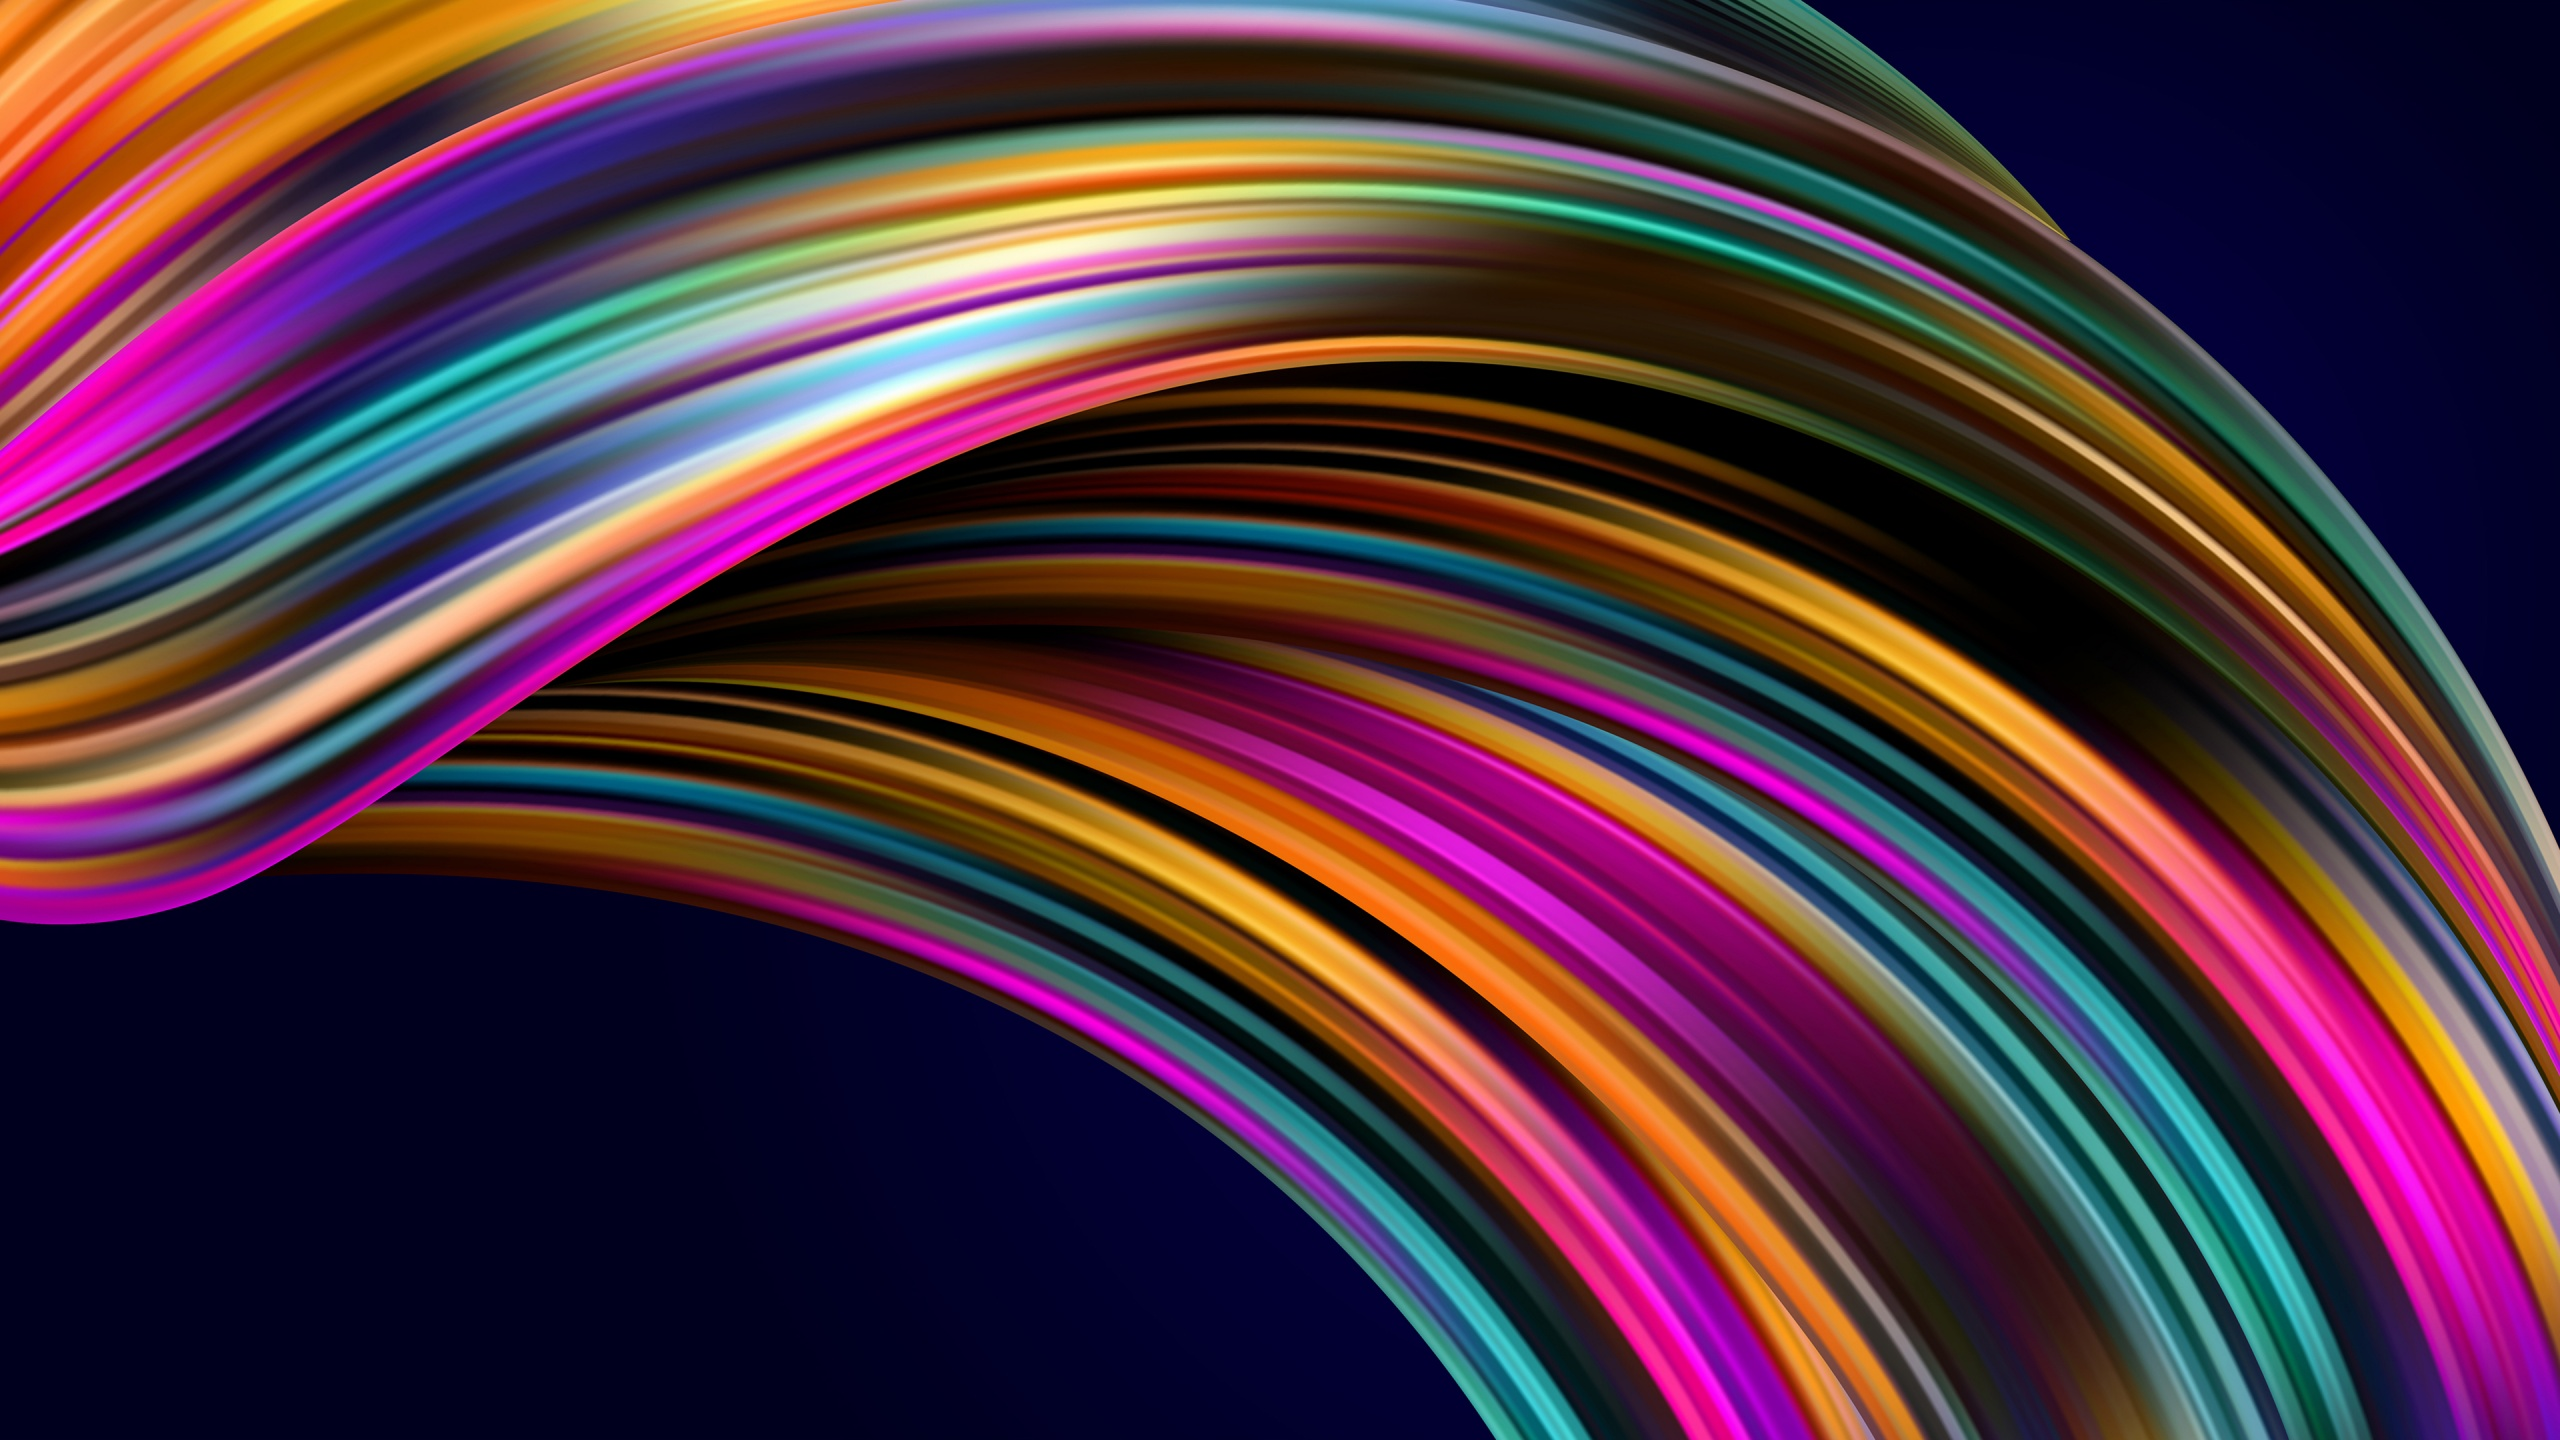 Asus Zenbook Pro Duo 4k Wallpaper Spectrum Waves Colorful Stock Abstract Search Results 2890